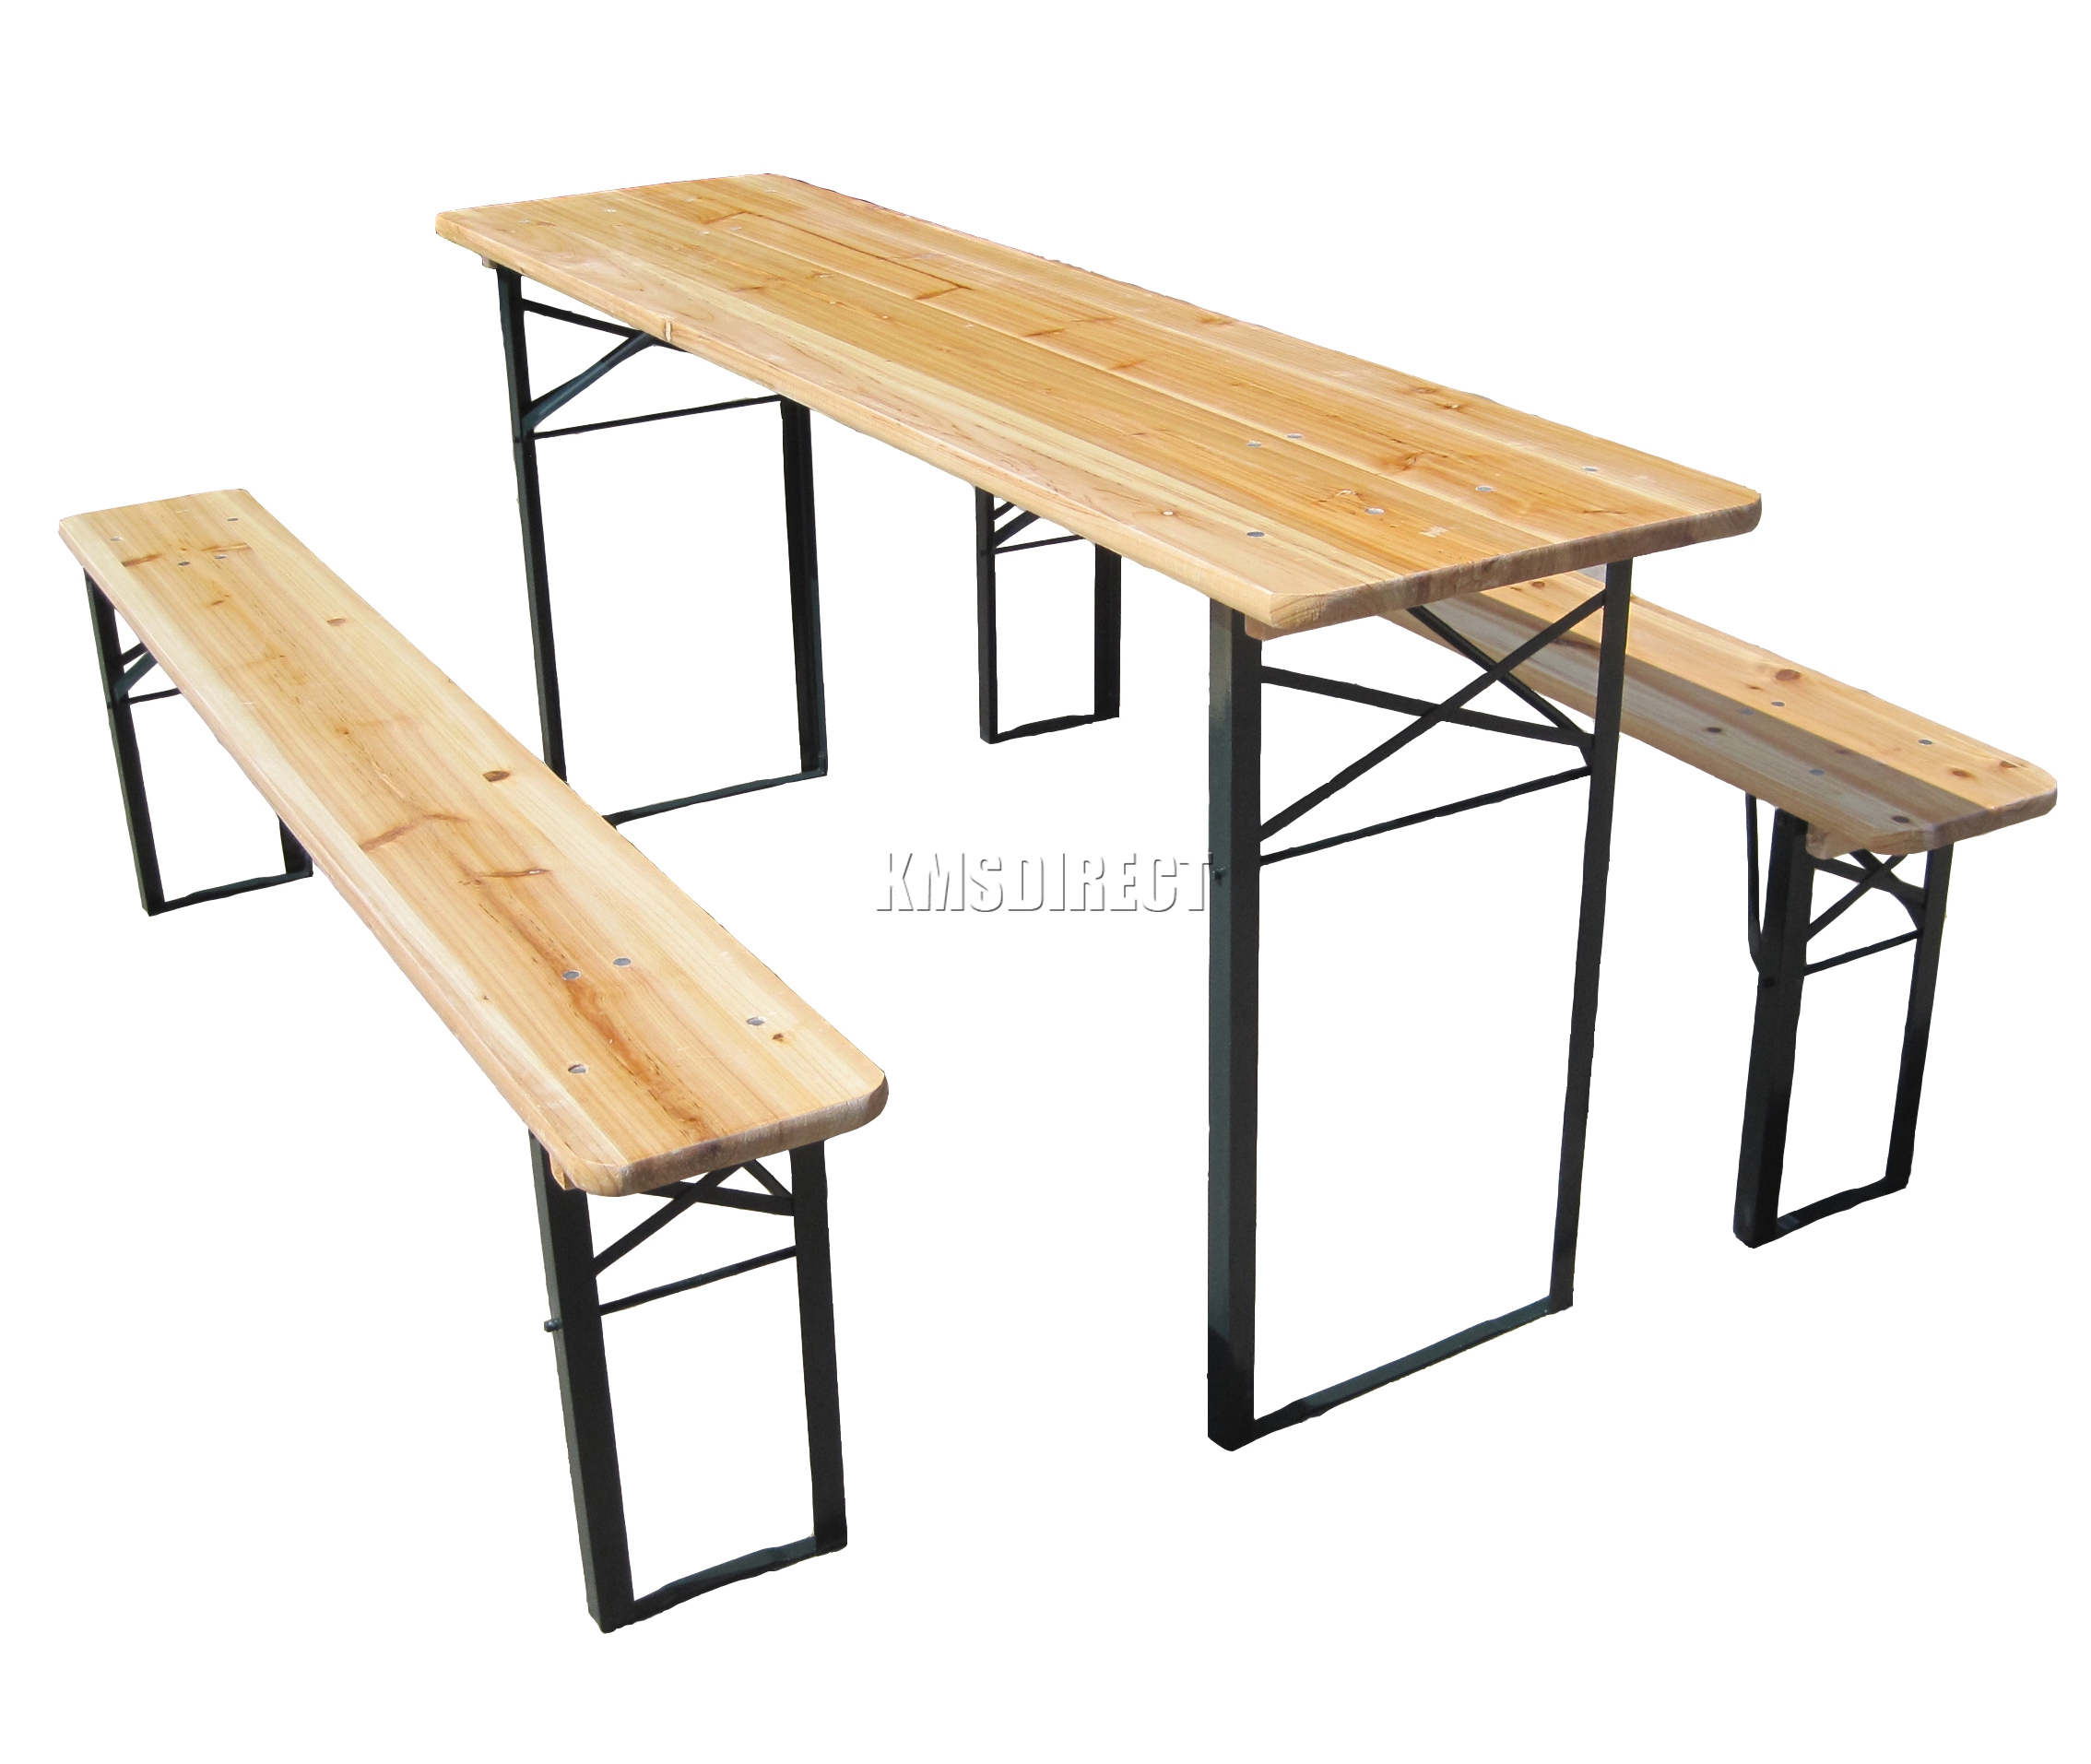 Sentinel Outdoor Wooden Folding Beer Table Bench Set Trestle Garden Furniture Steel Leg